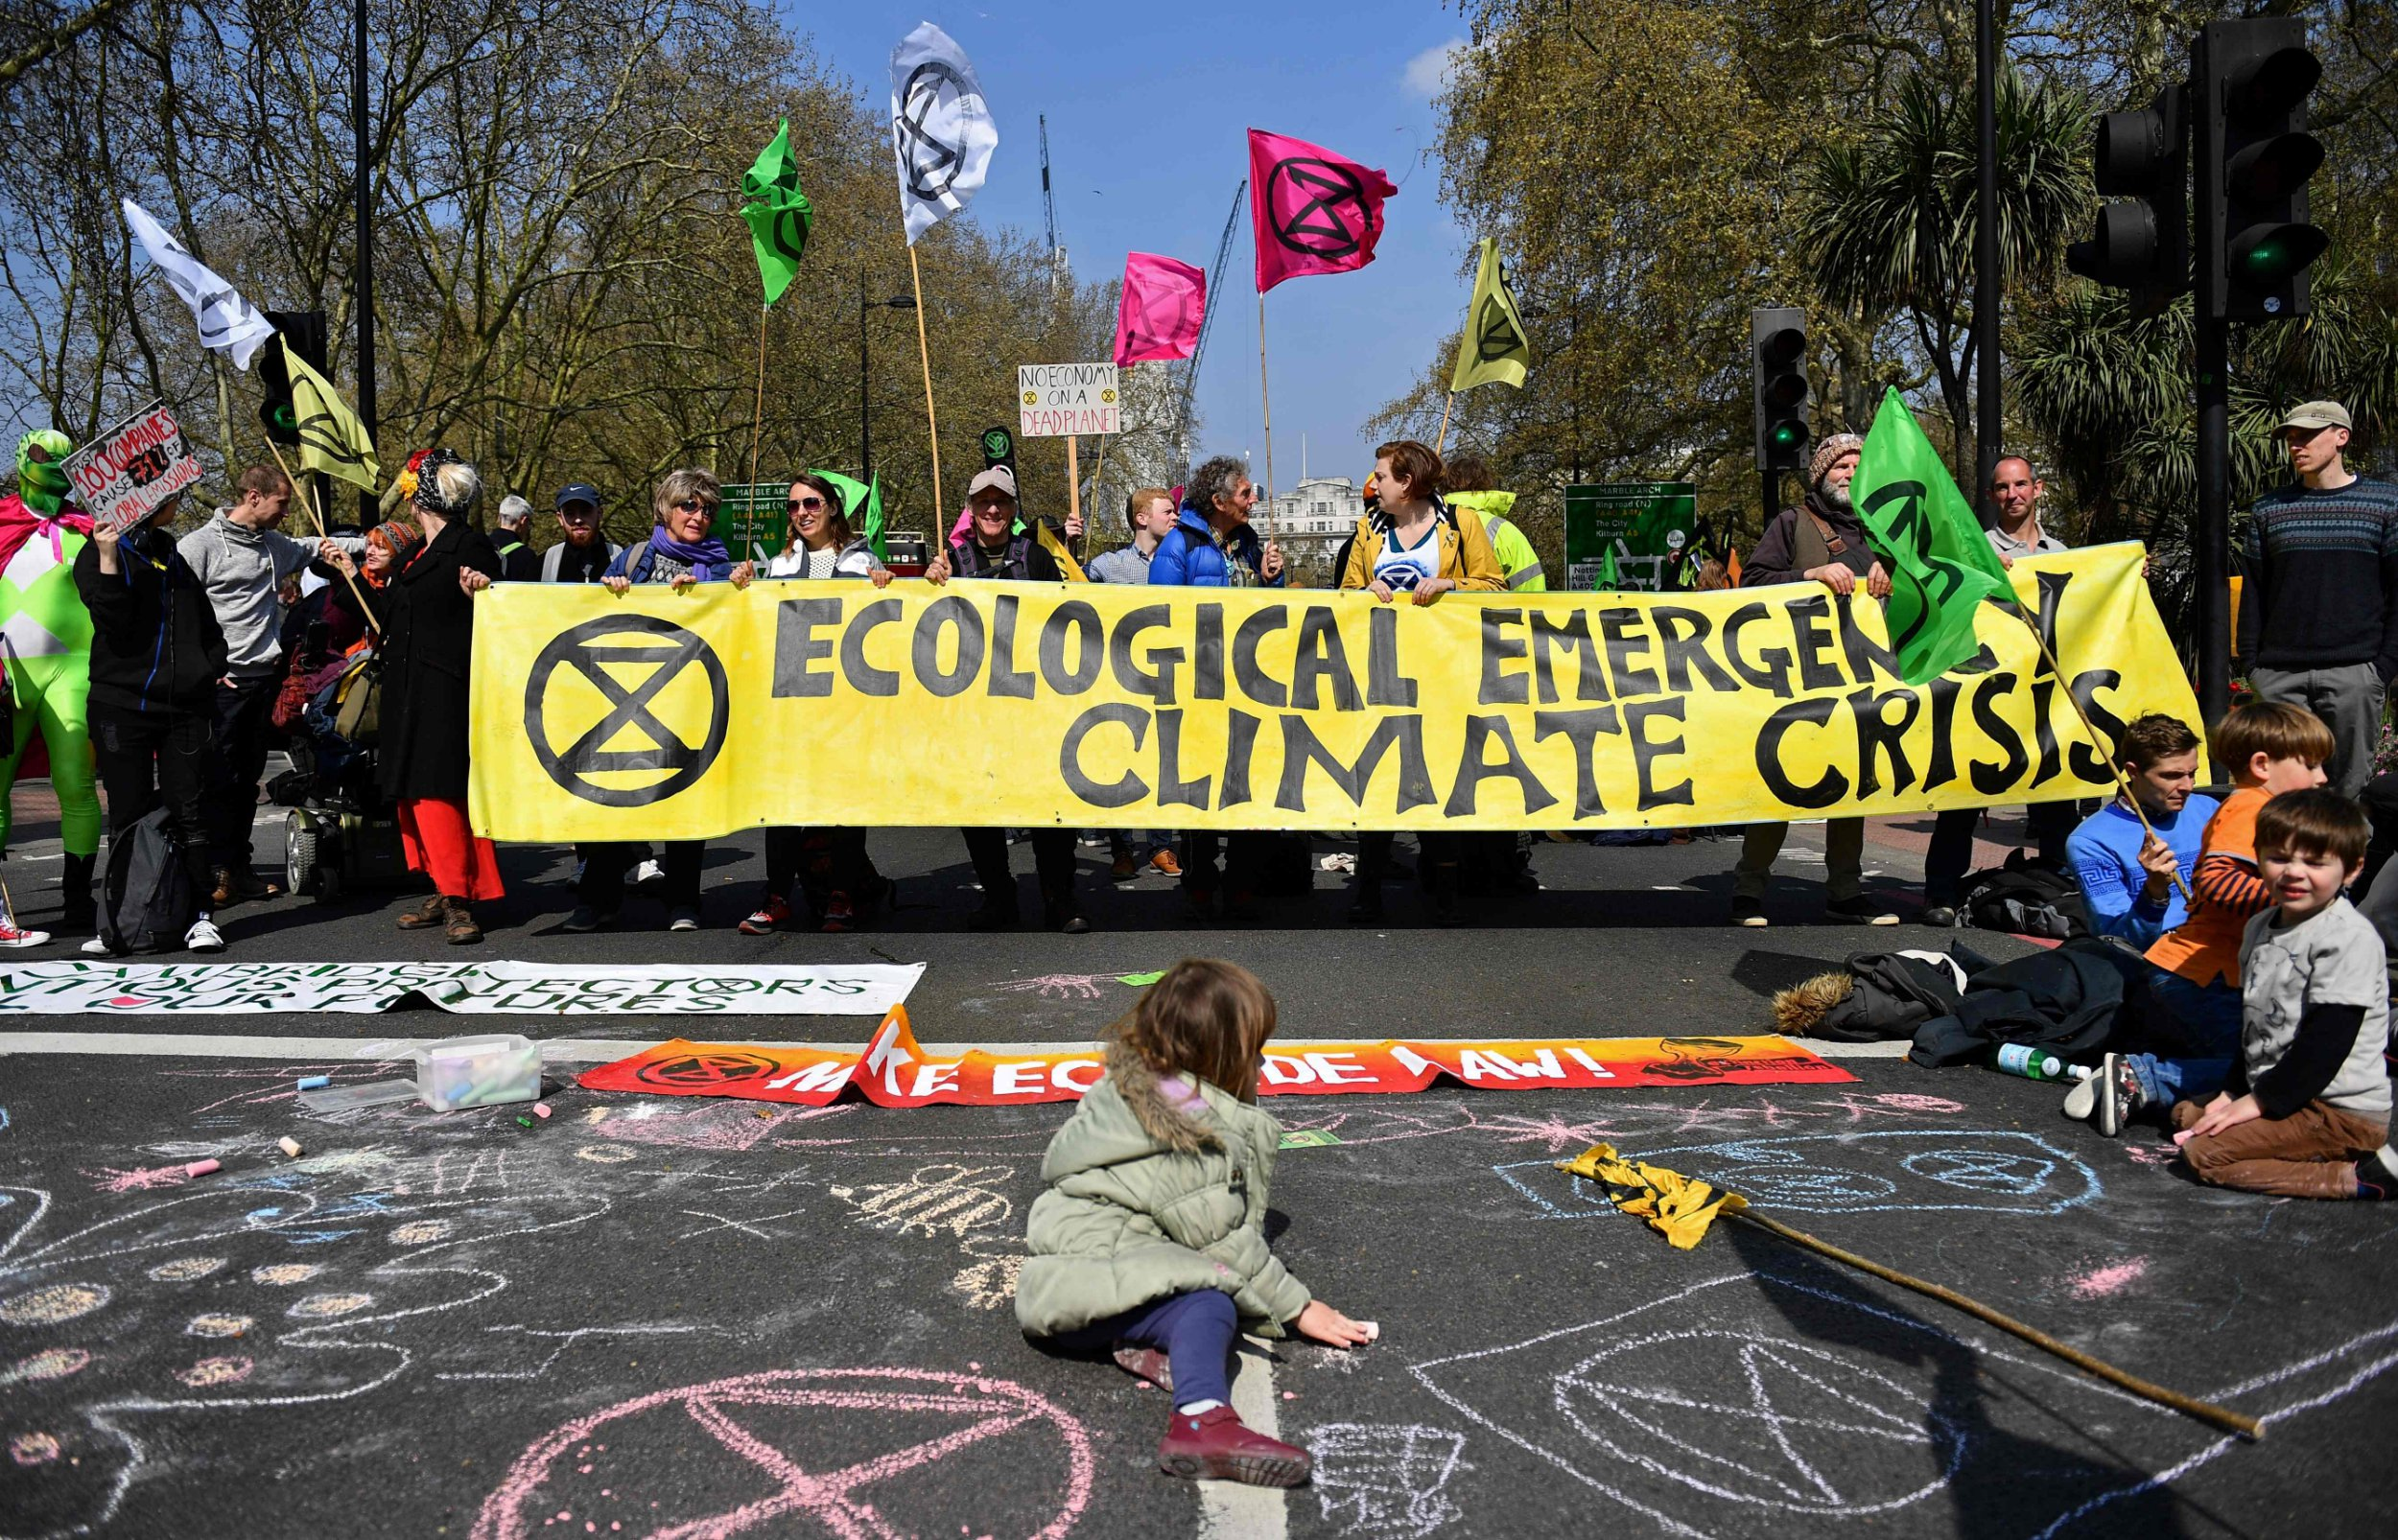 """Environmental protesters from the Extinction Rebellion group stage a demonstration in a road near Marble Arch in London on April 15, 2019. - Environmental protesters from the Extinction Rebellion campaign group started a programme of demonstrations designed to block five of London's busiest and iconic locations to draw attention to what they see as the """"Ecological and Climate Emergency"""" of climate change. (Photo by Daniel LEAL-OLIVAS / AFP)DANIEL LEAL-OLIVAS/AFP/Getty Images"""